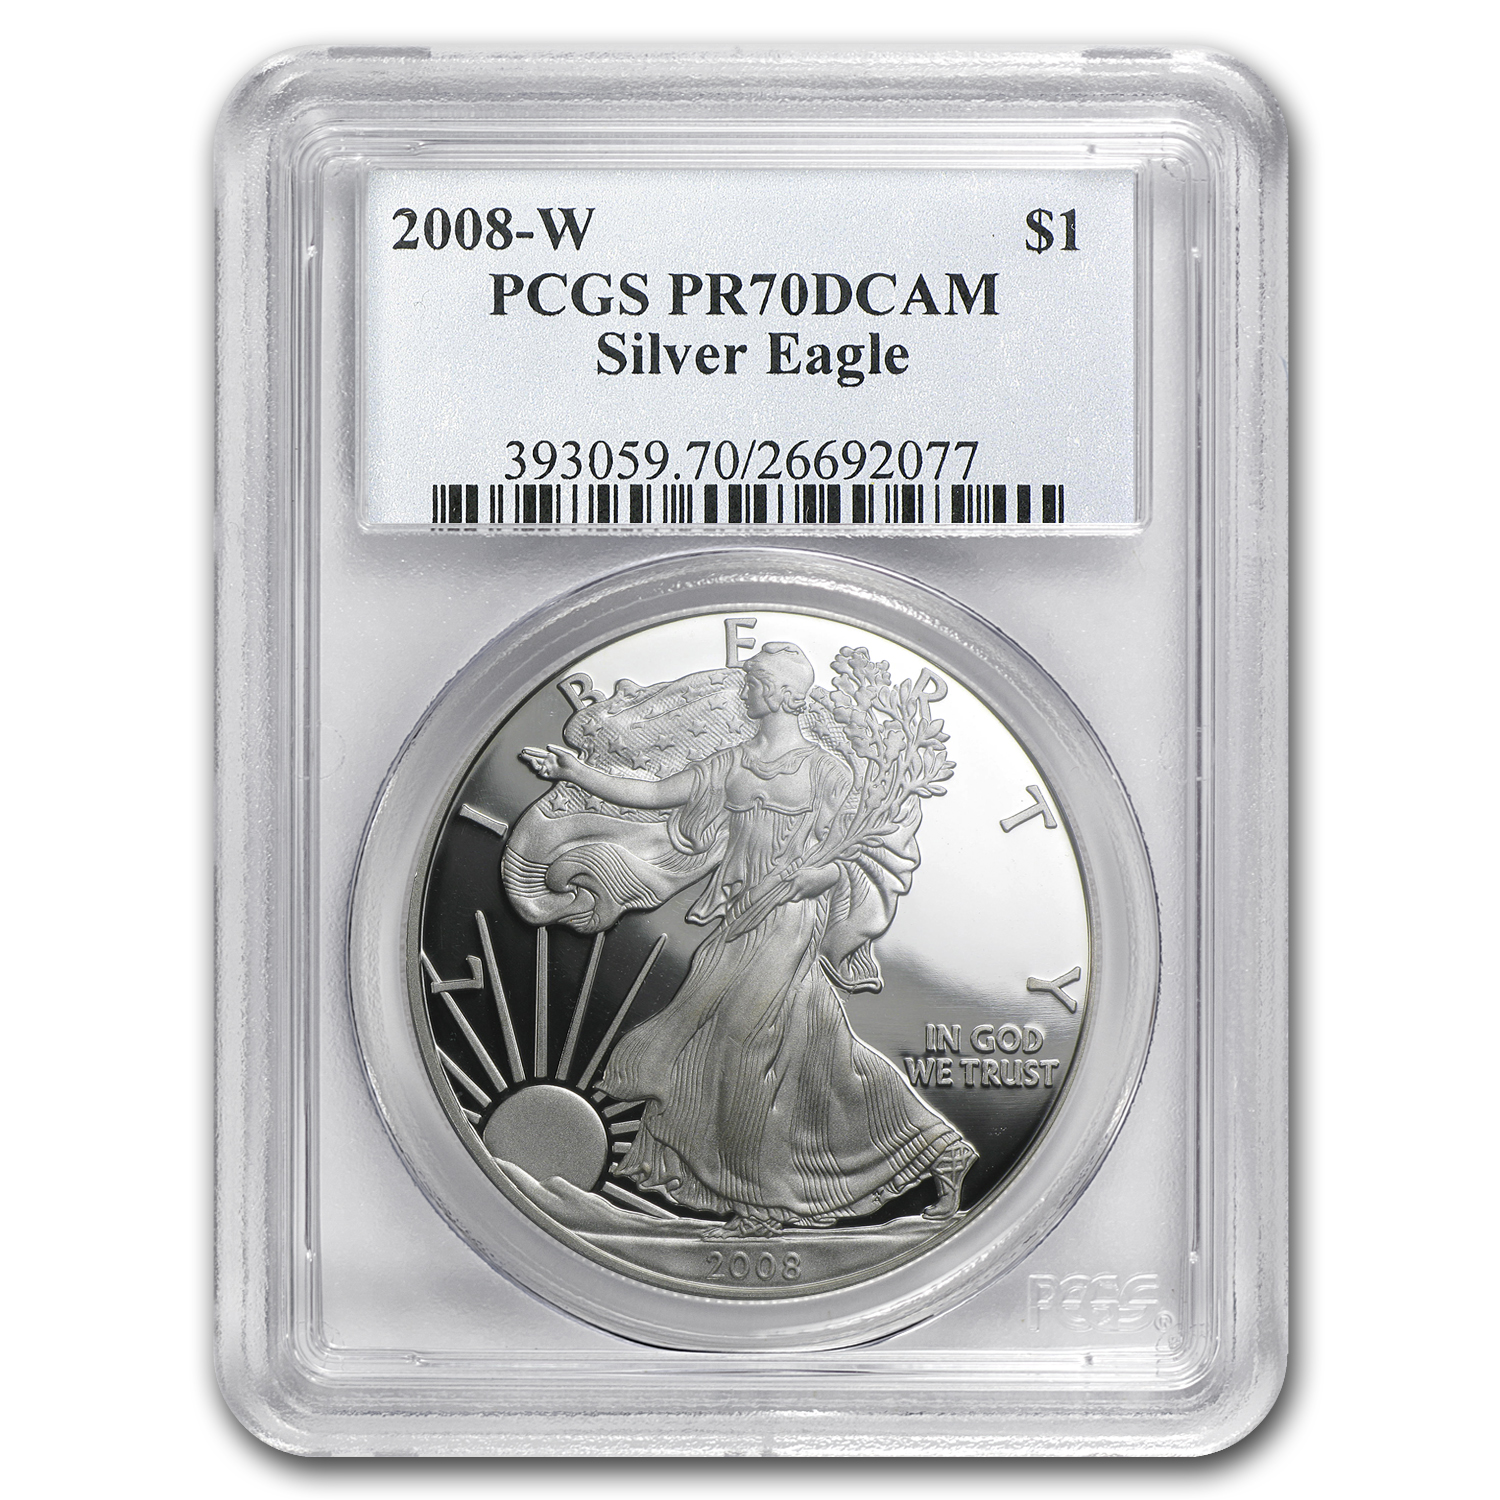 2008-W Proof Silver American Eagle PR-70 PCGS